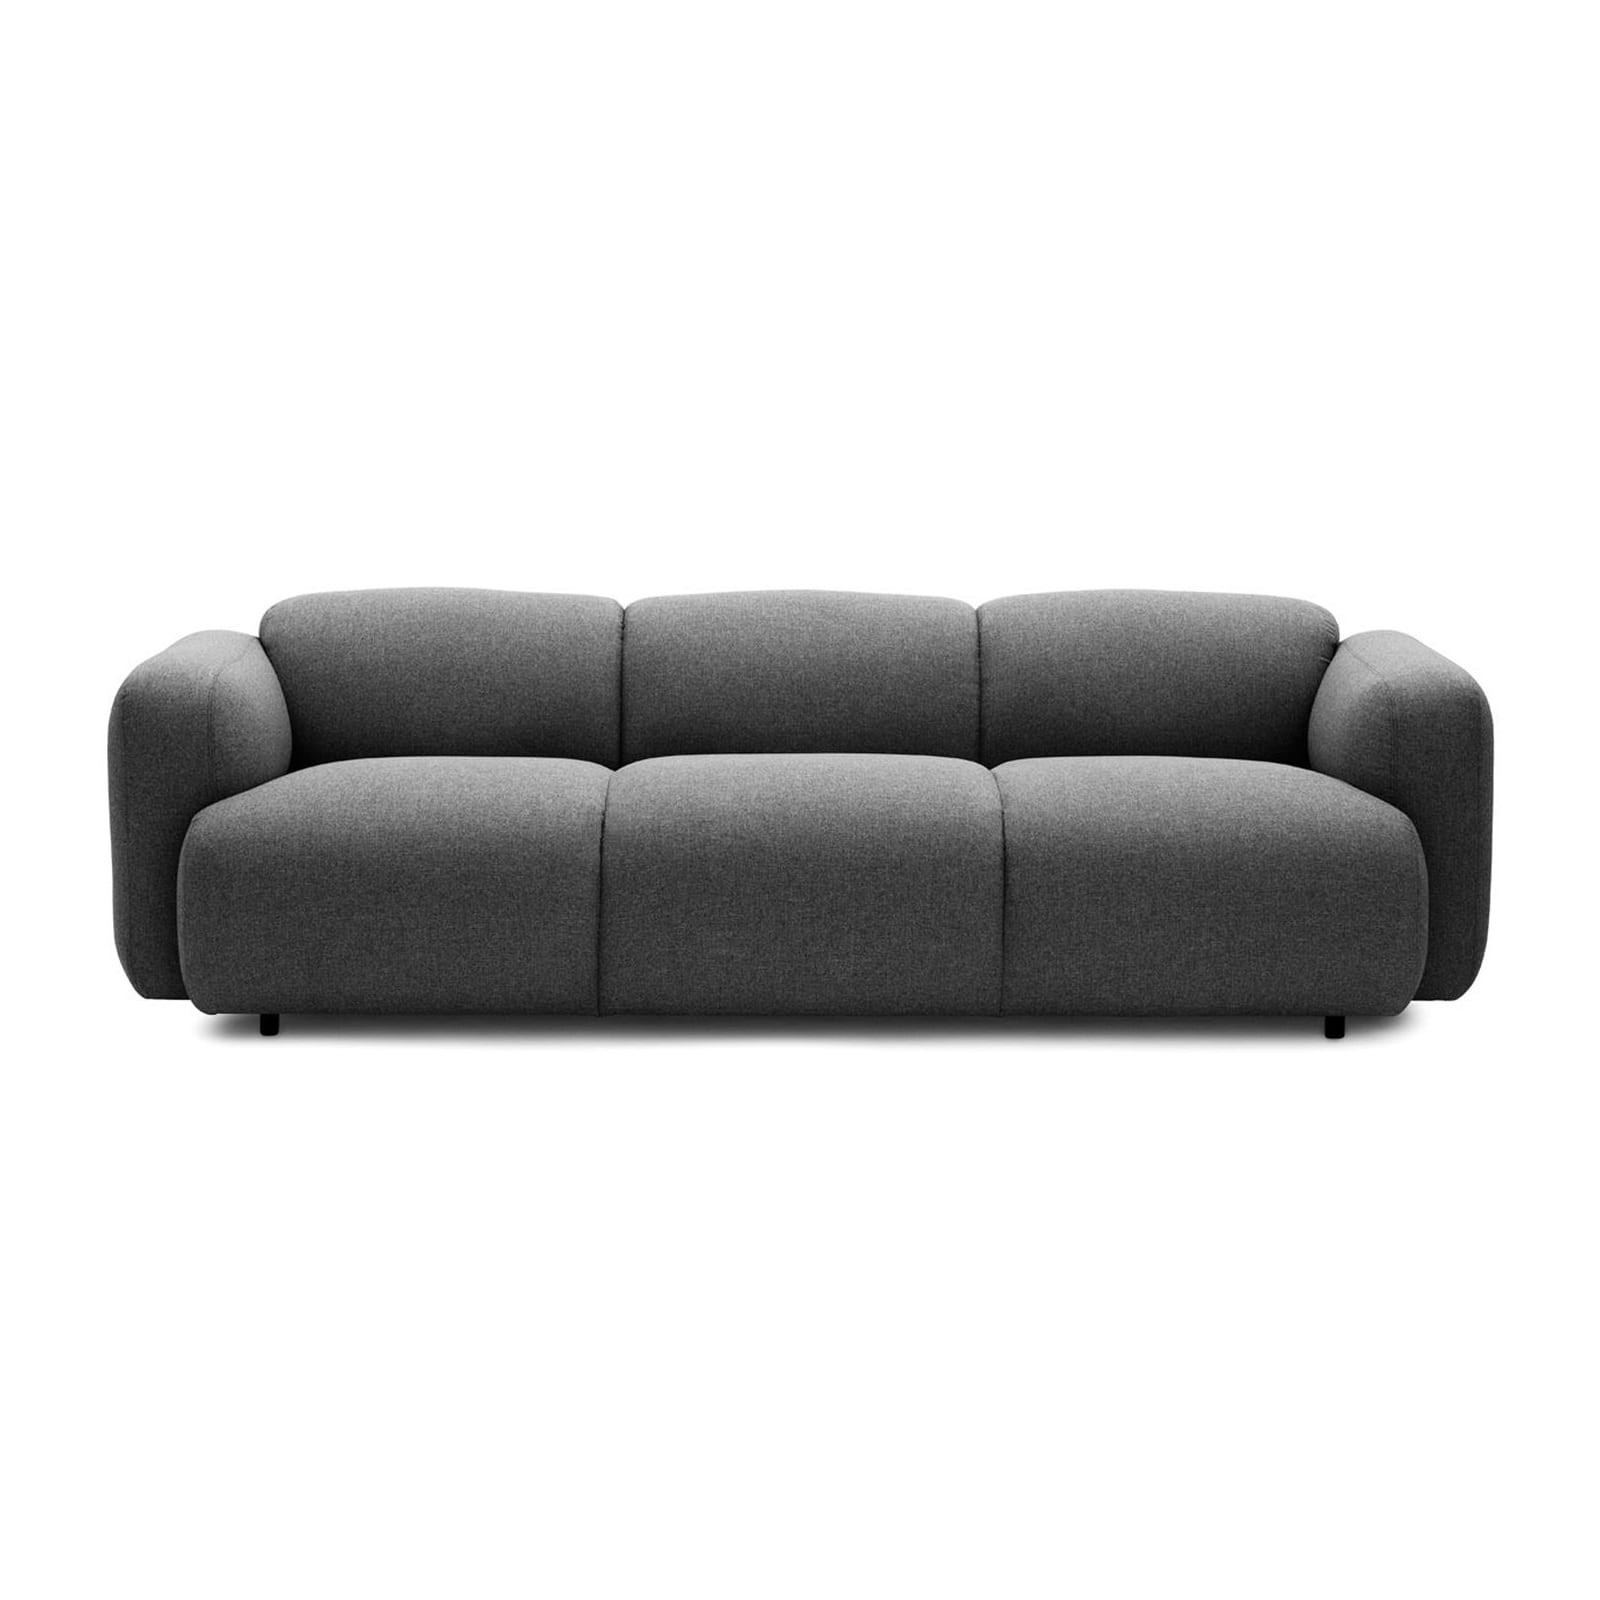 Swell Sofa 3 Seater - Normann Copenhagen